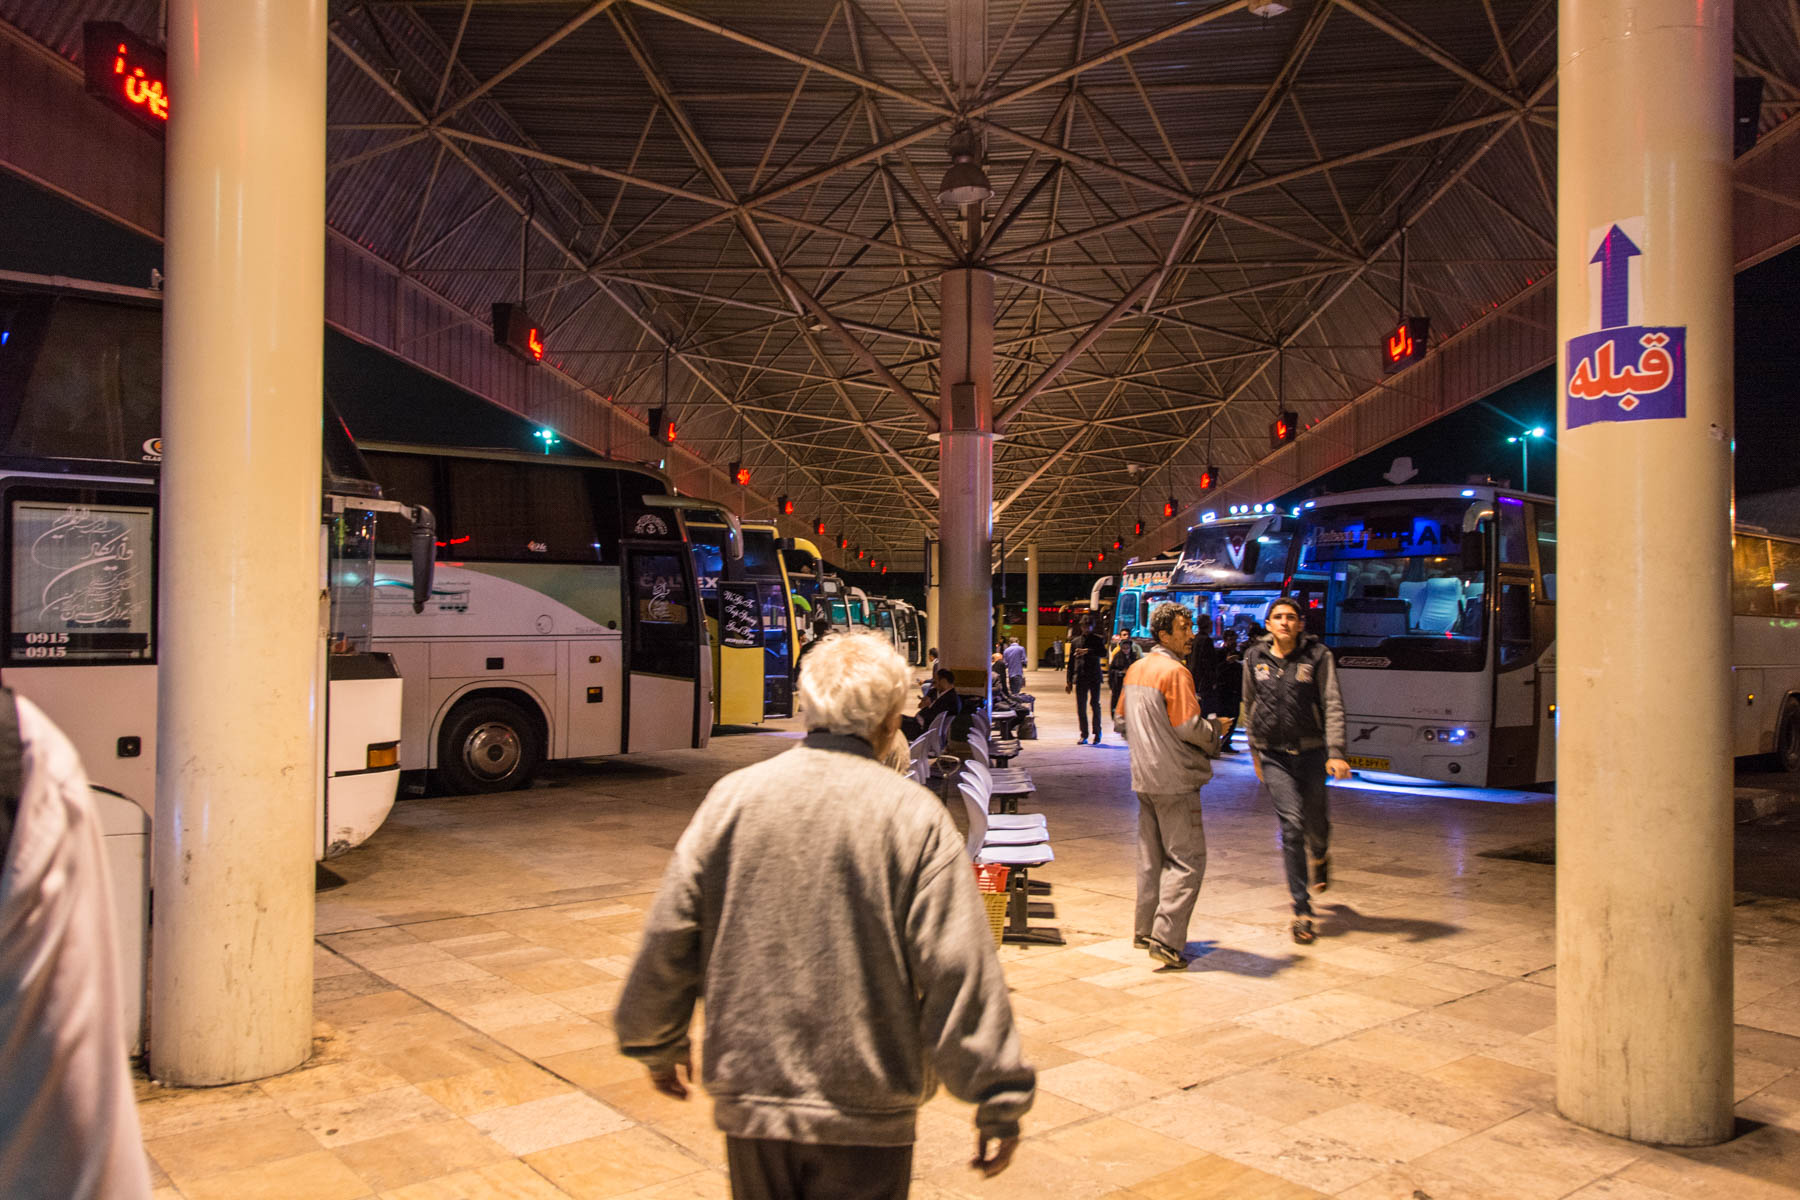 The bus terminal of Mashhad, Iran at night.